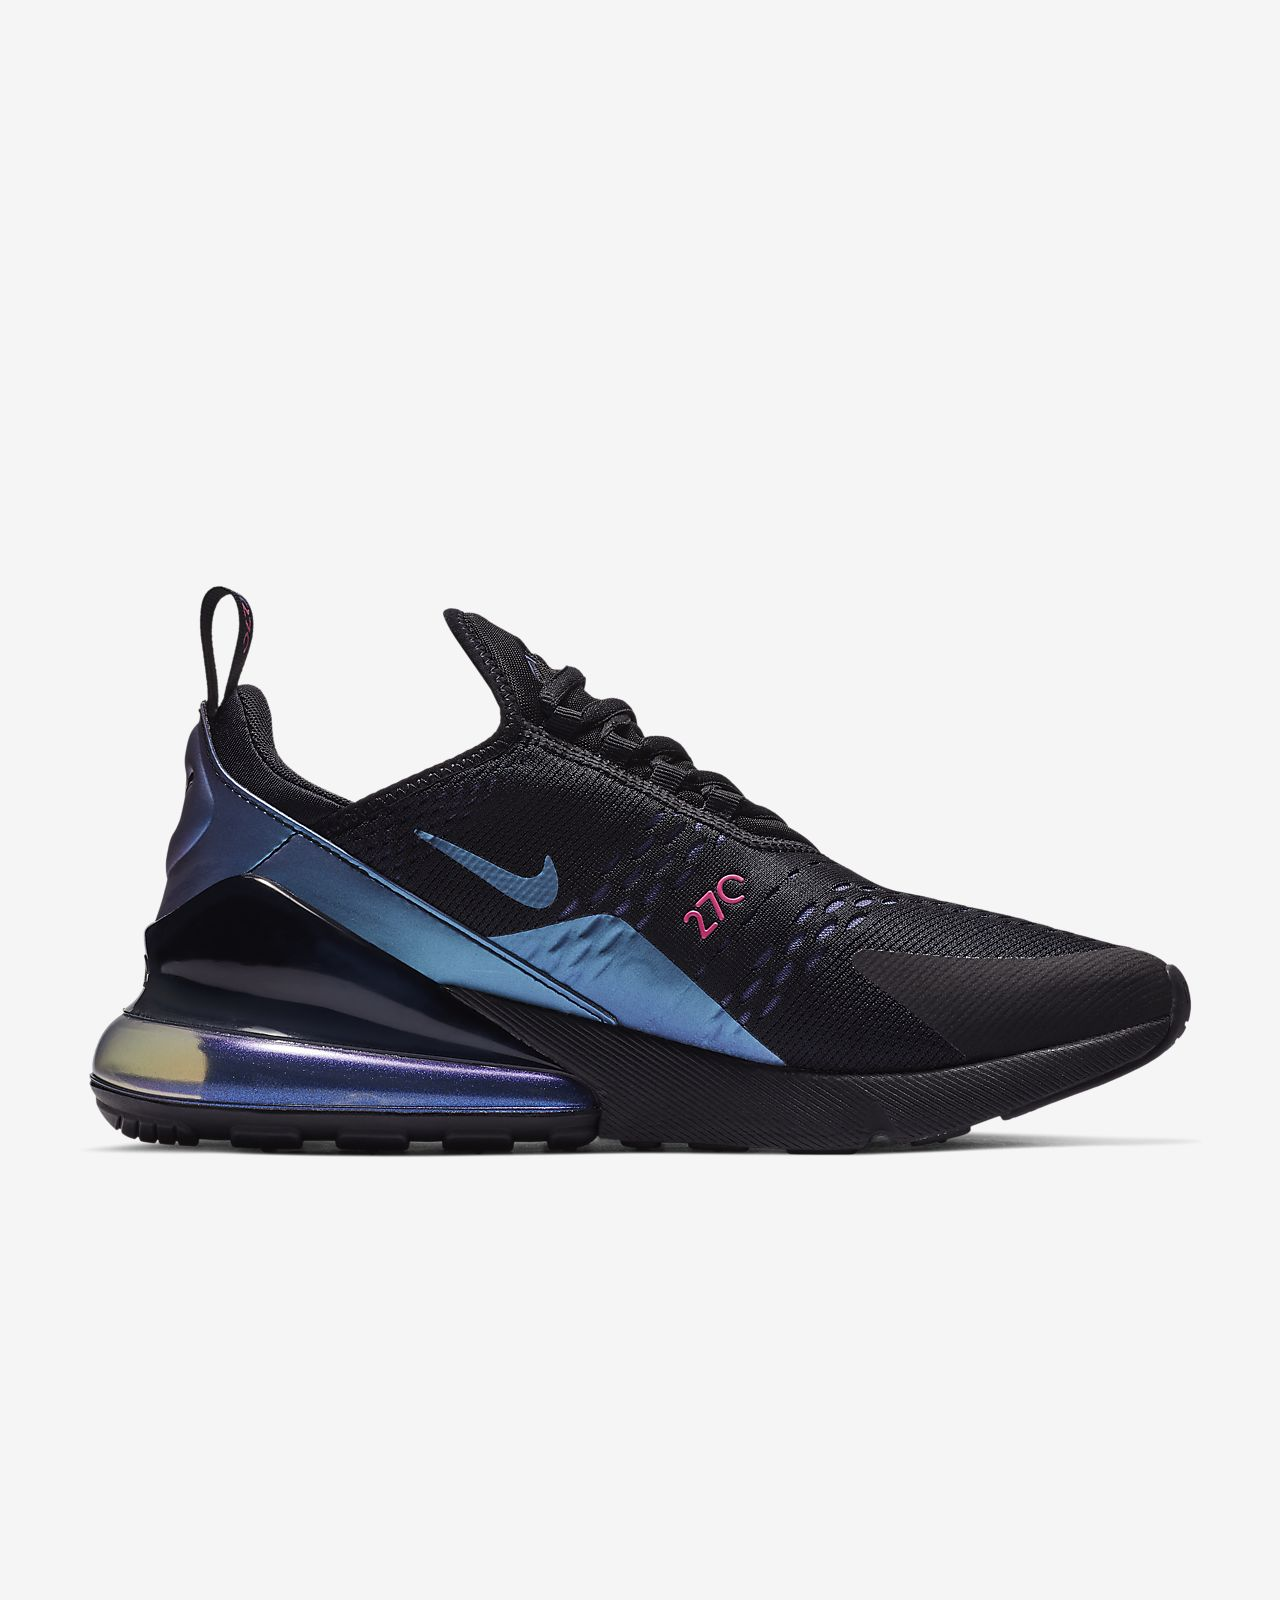 0b314e85889 Nike Air Max 270 Men s Shoe. Nike.com GB